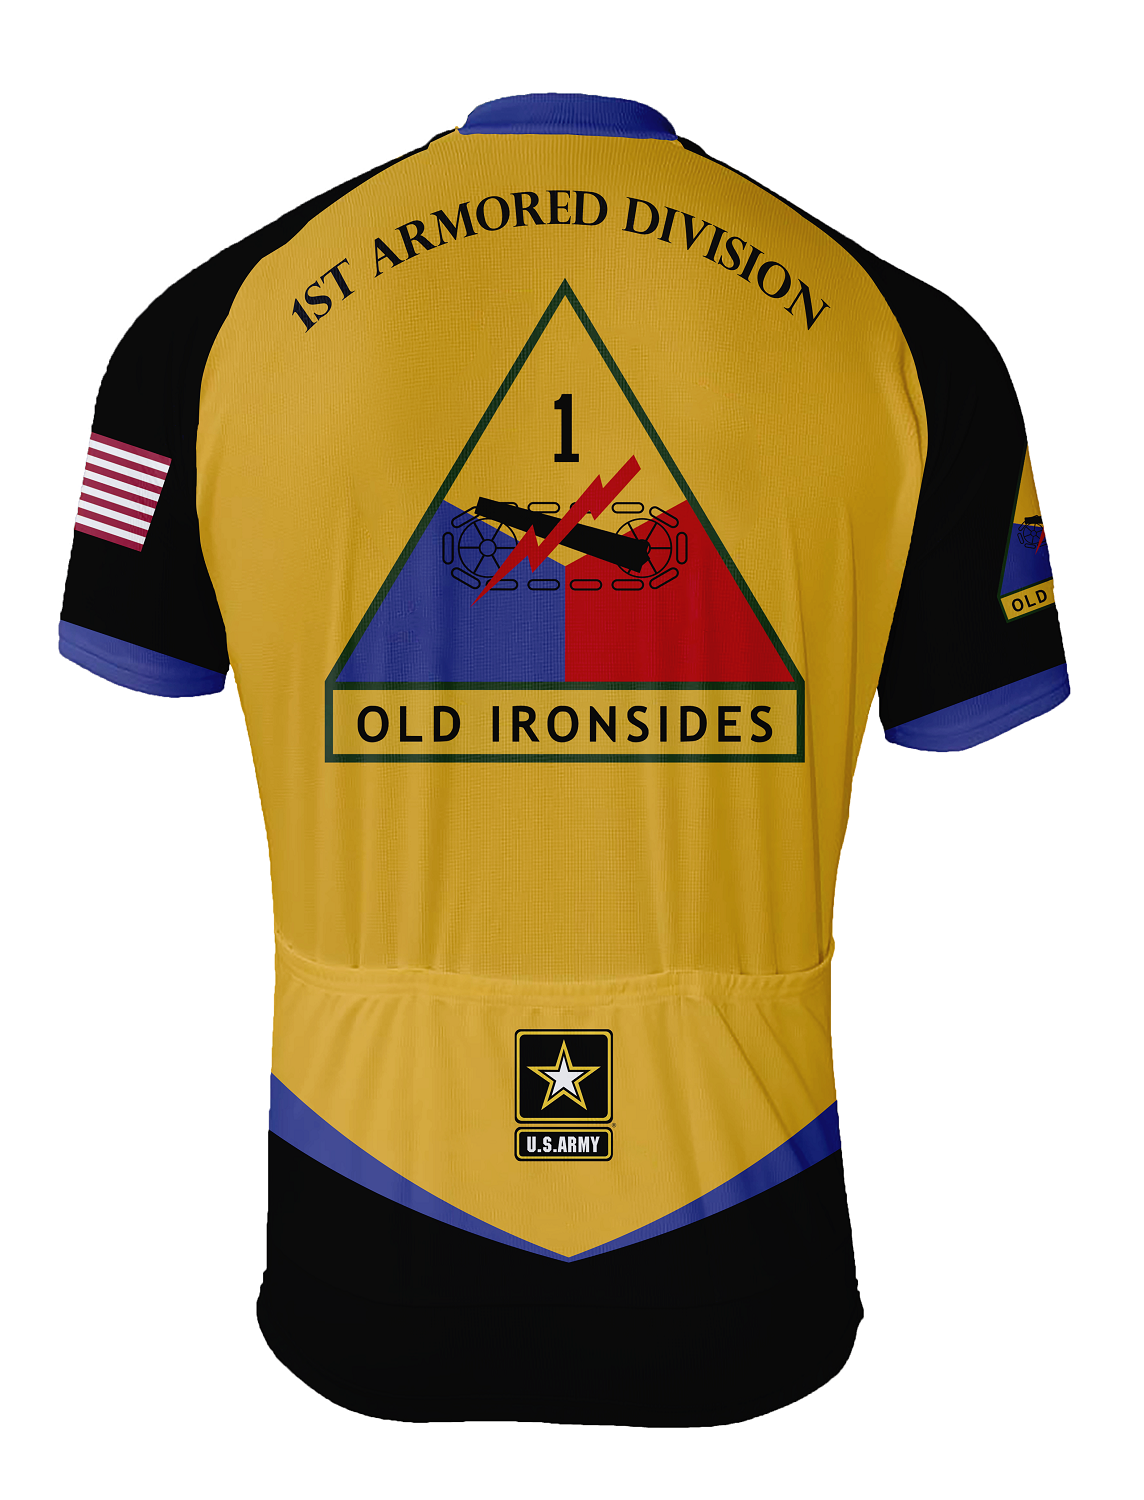 952ffb05b 1st Armored Division Cycling Jersey